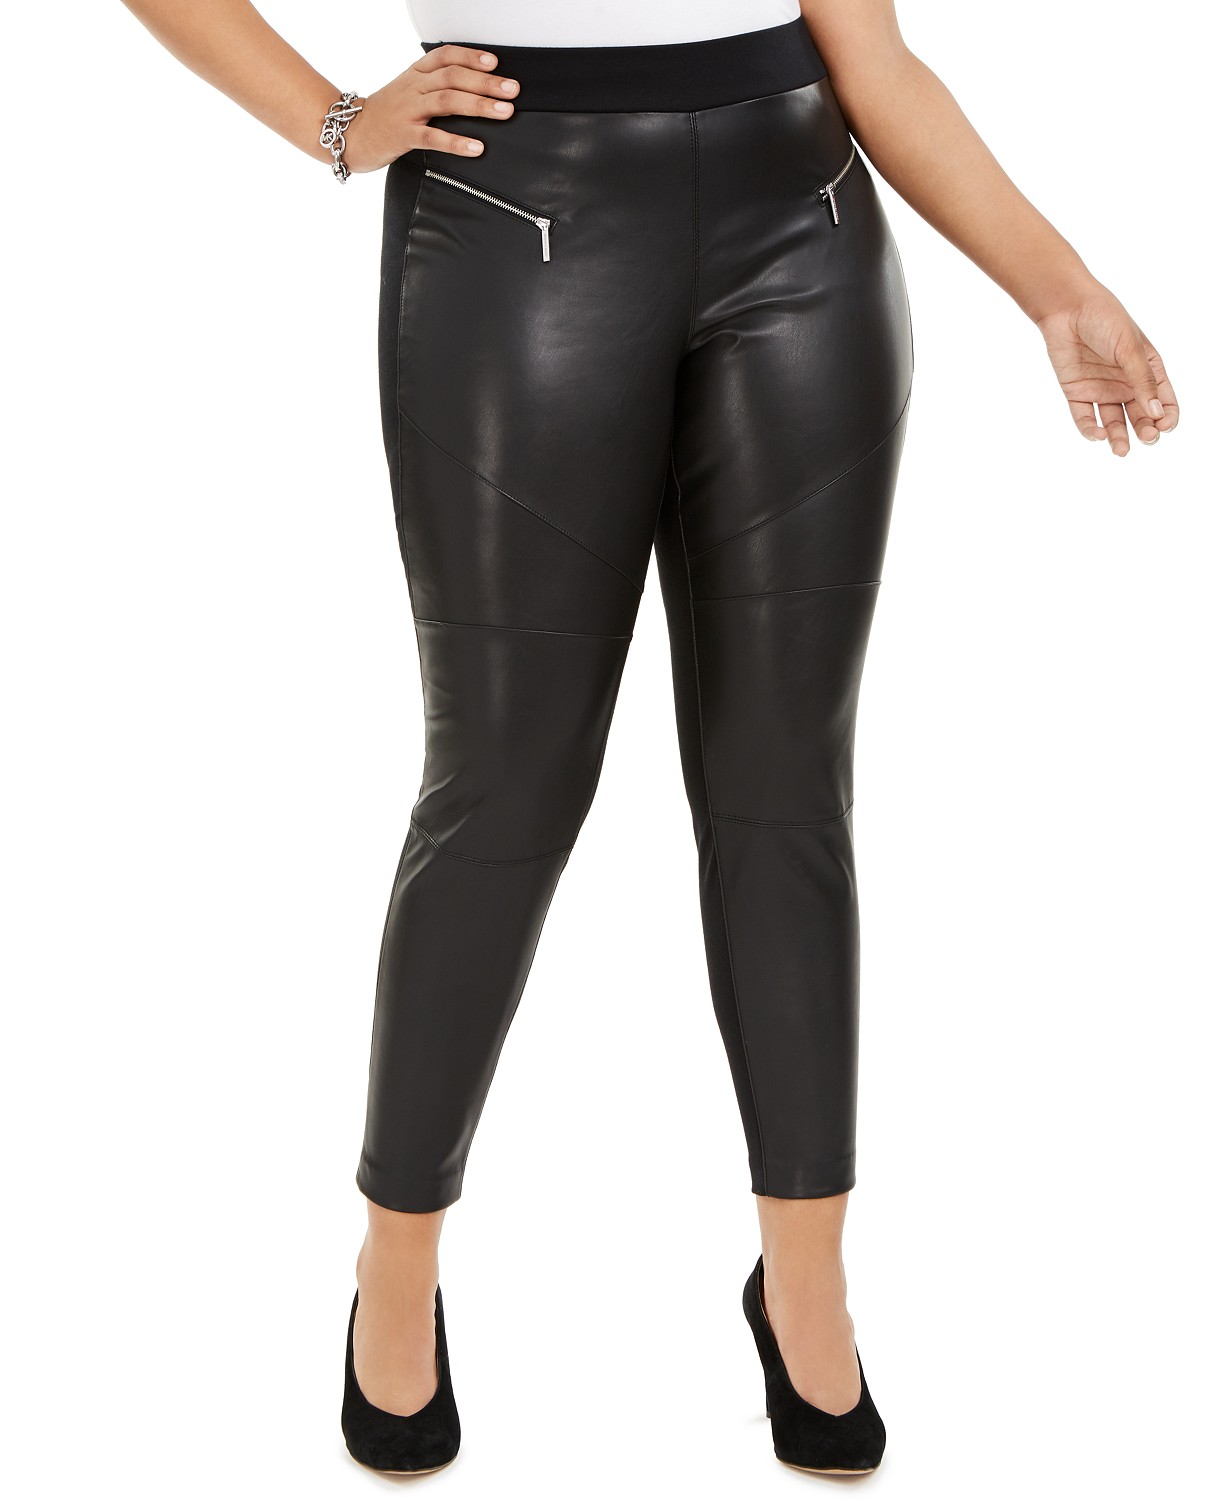 https://www.macys.com/shop/product/michael-michael-kors-plus-size-faux-leather-front-moto-leggings?ID=10020496&CategoryID=34053&isDlp=true#fn=sp%3D1%26spc%3D2268%26ruleId%3D136%7CBOOST%20ATTRIBUTE%7CBOOST%20SAVED%20SET%26kws%3Dmichael%20kors%26searchPass%3DexactMultiMatch%26slotId%3D38